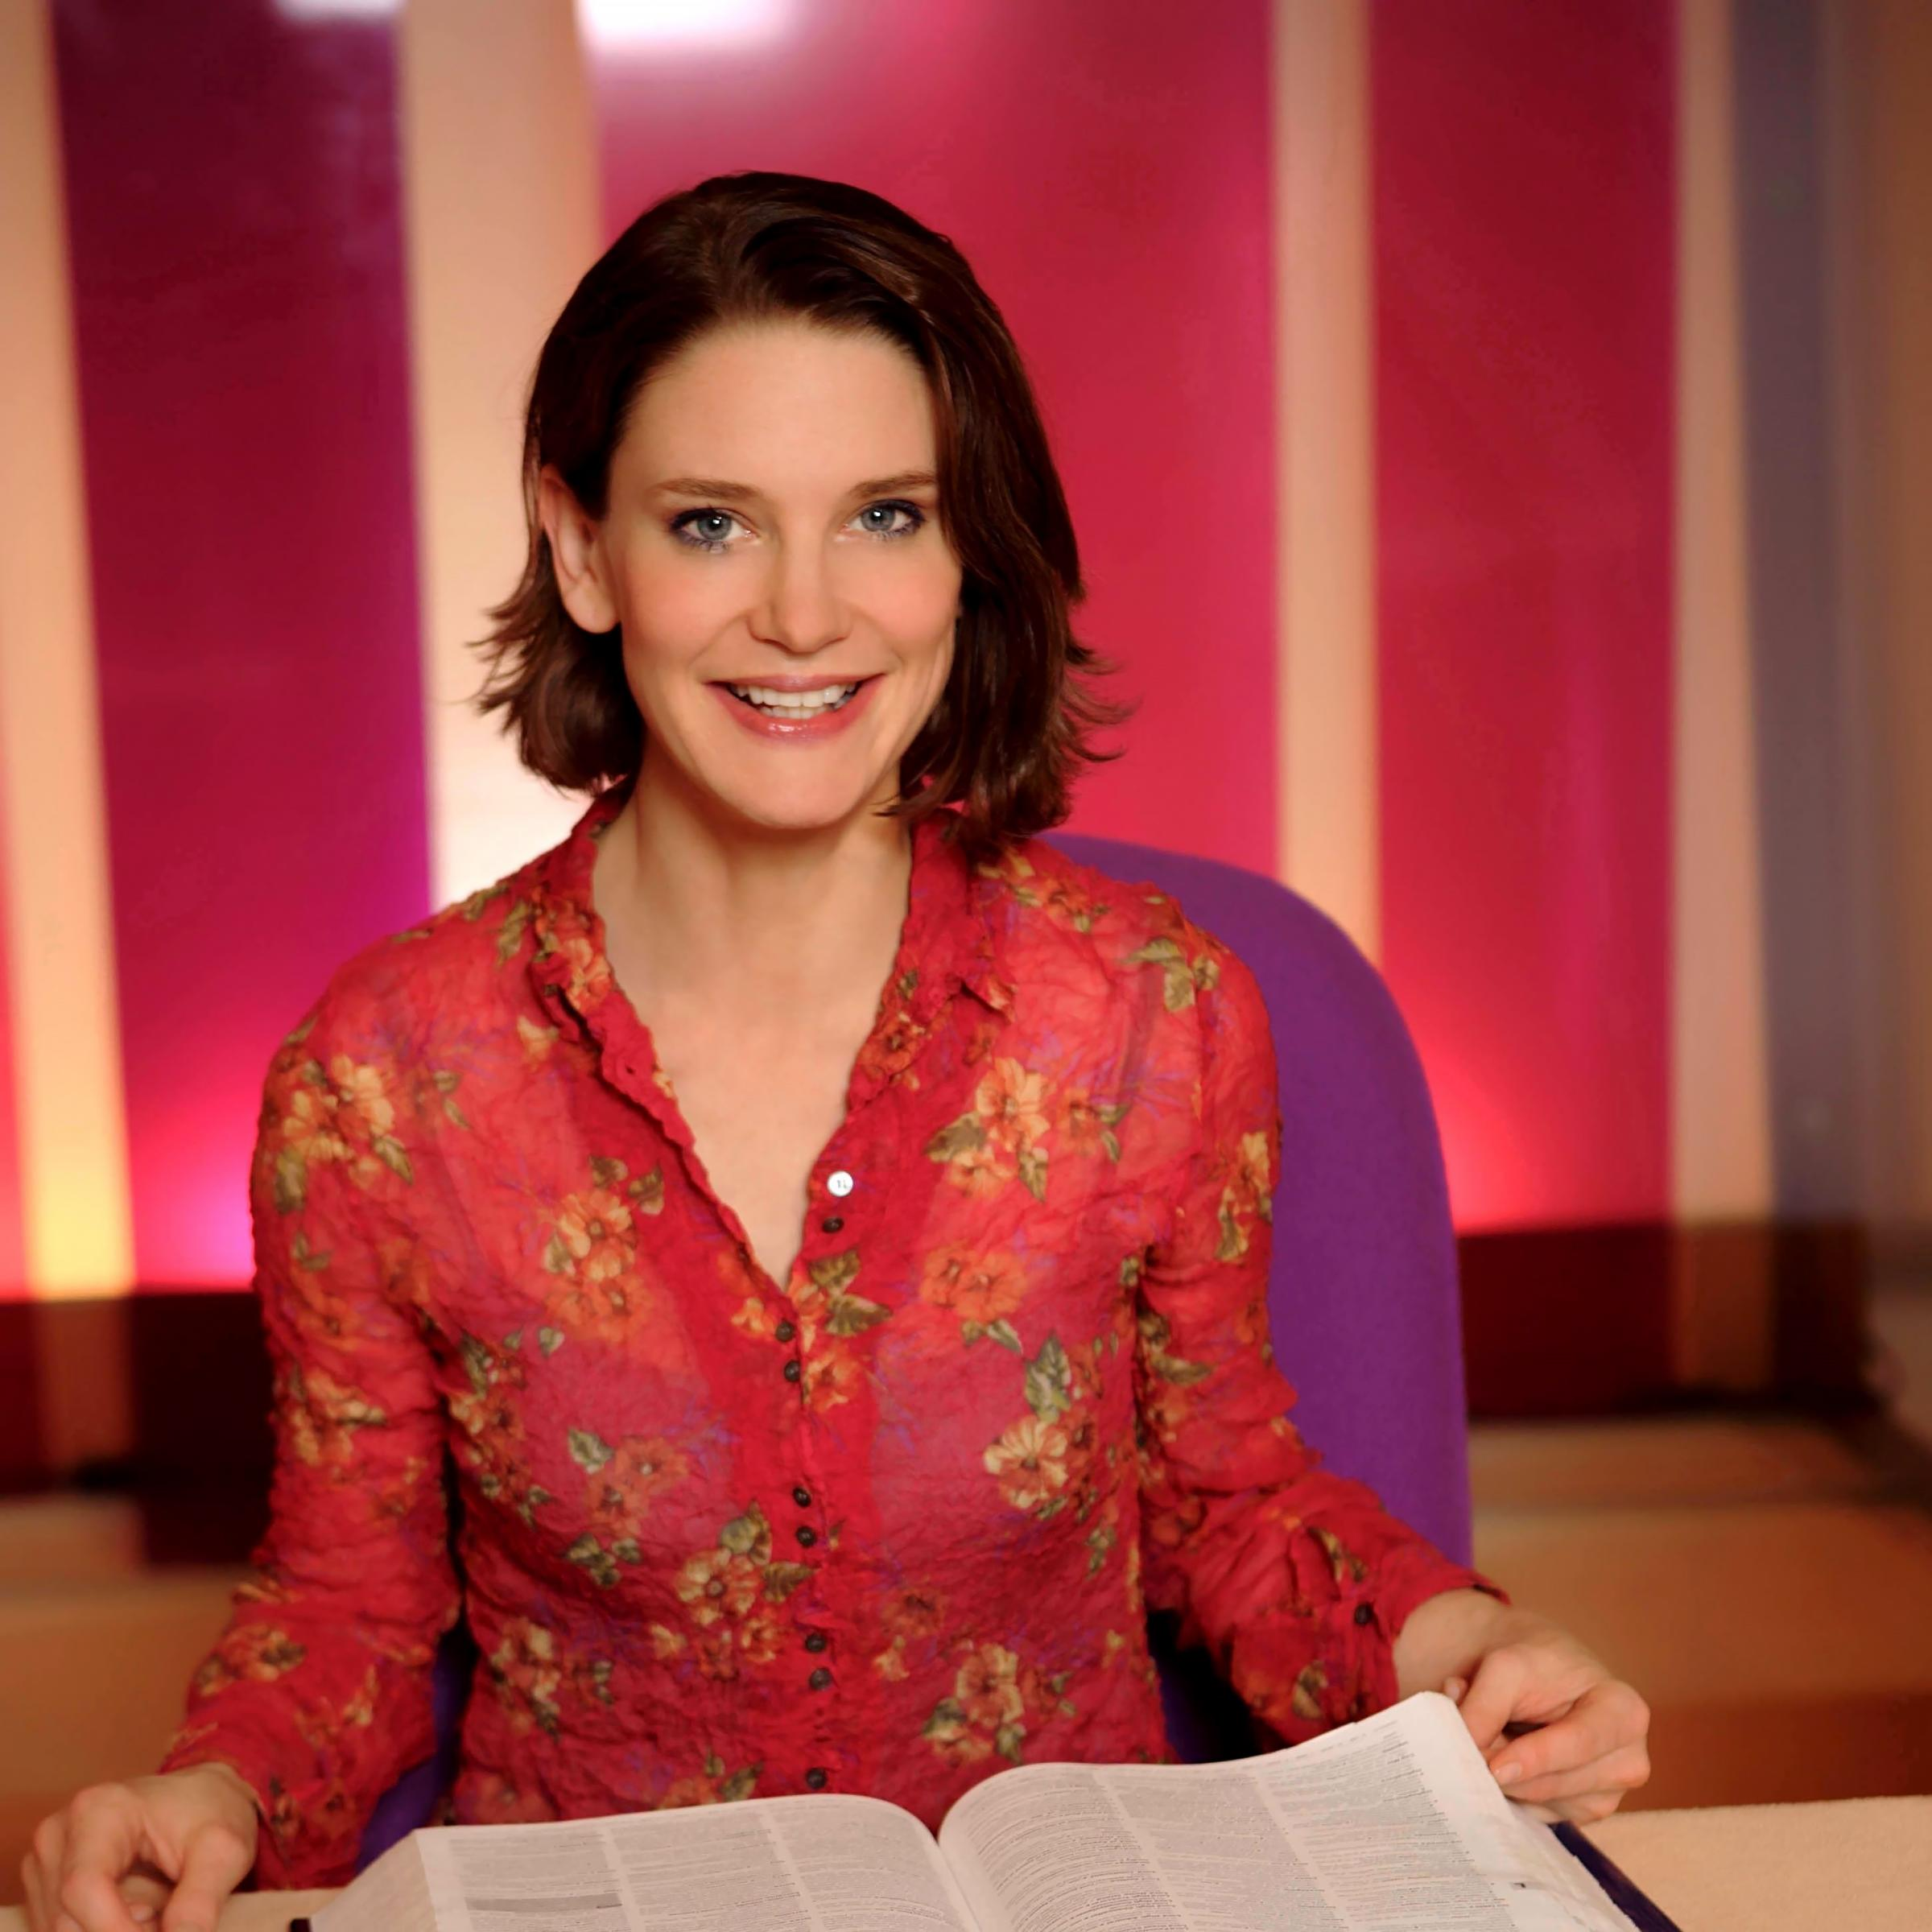 Susie Dent - The Secret Lives of Words